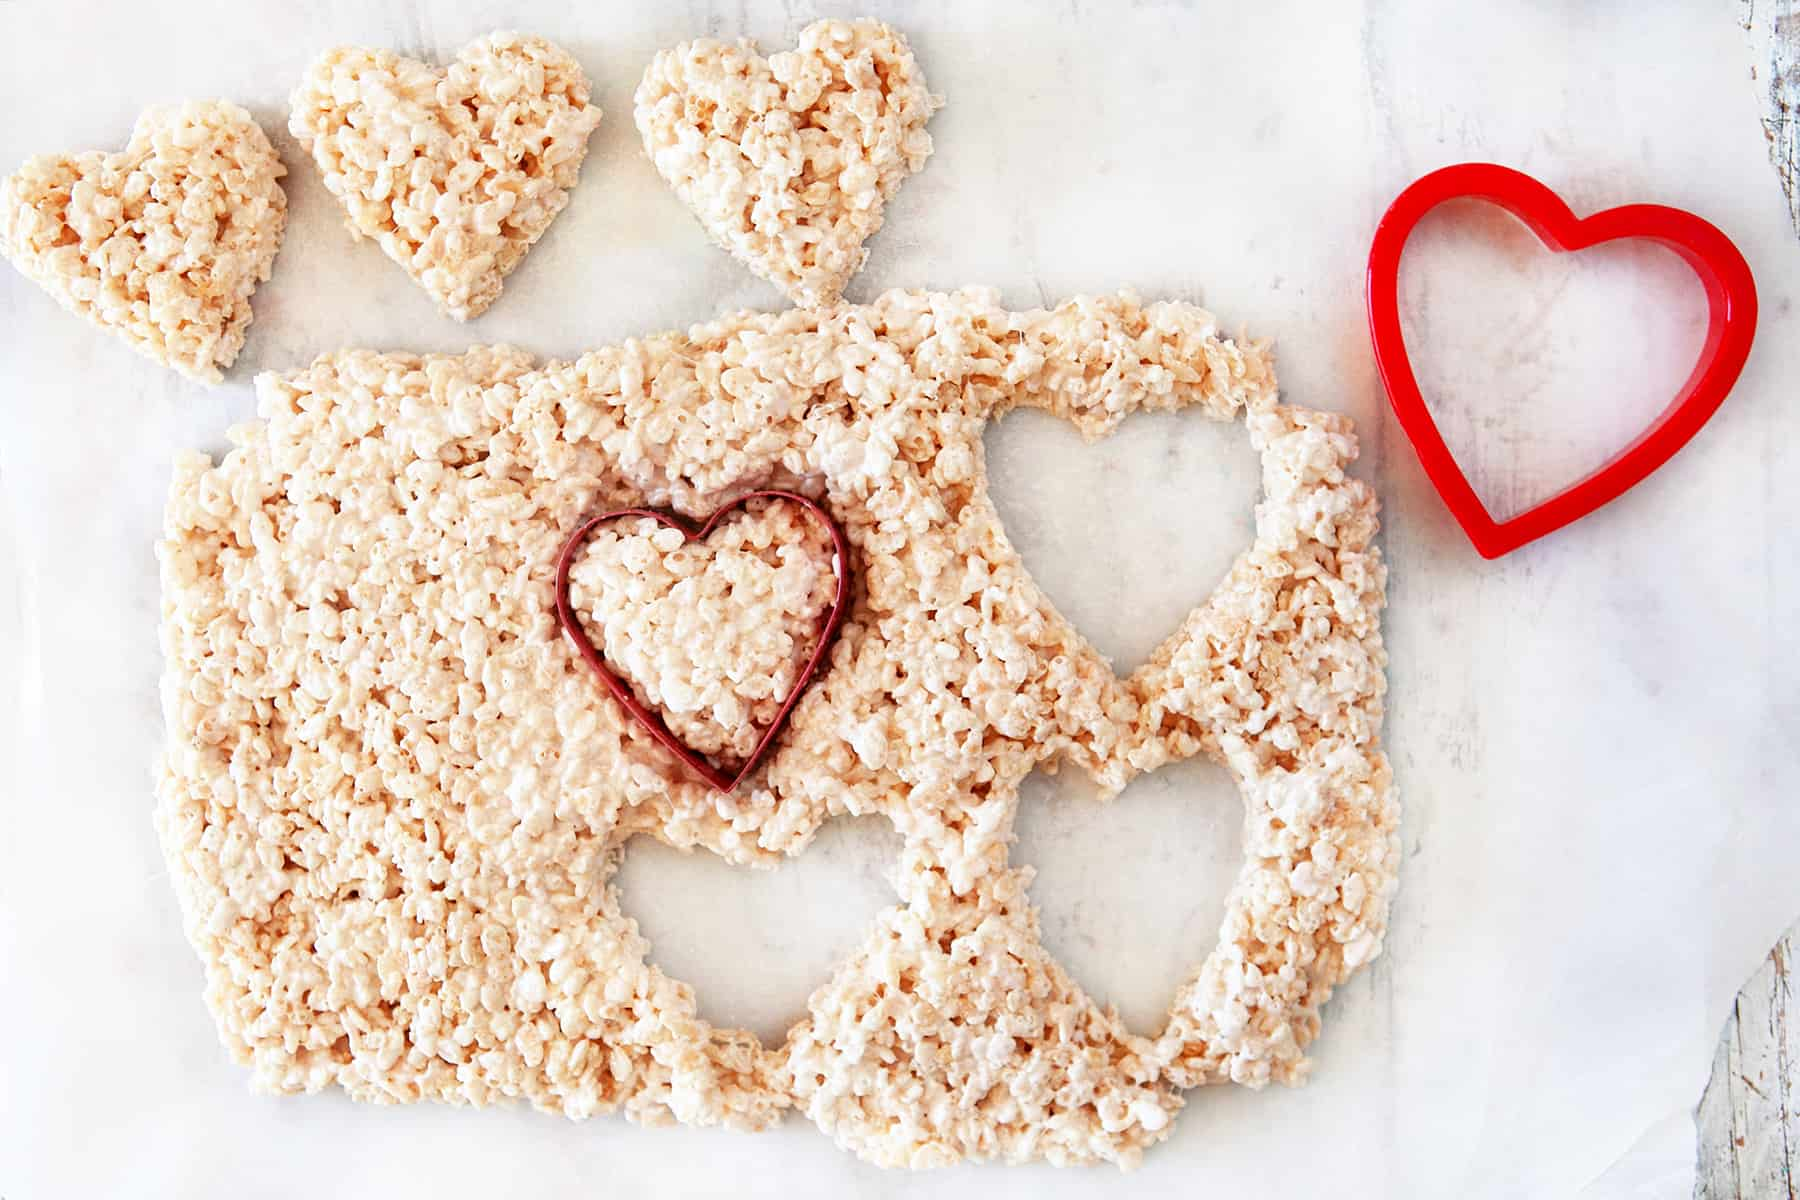 Cutting out heart shapes from rice krispie treats.